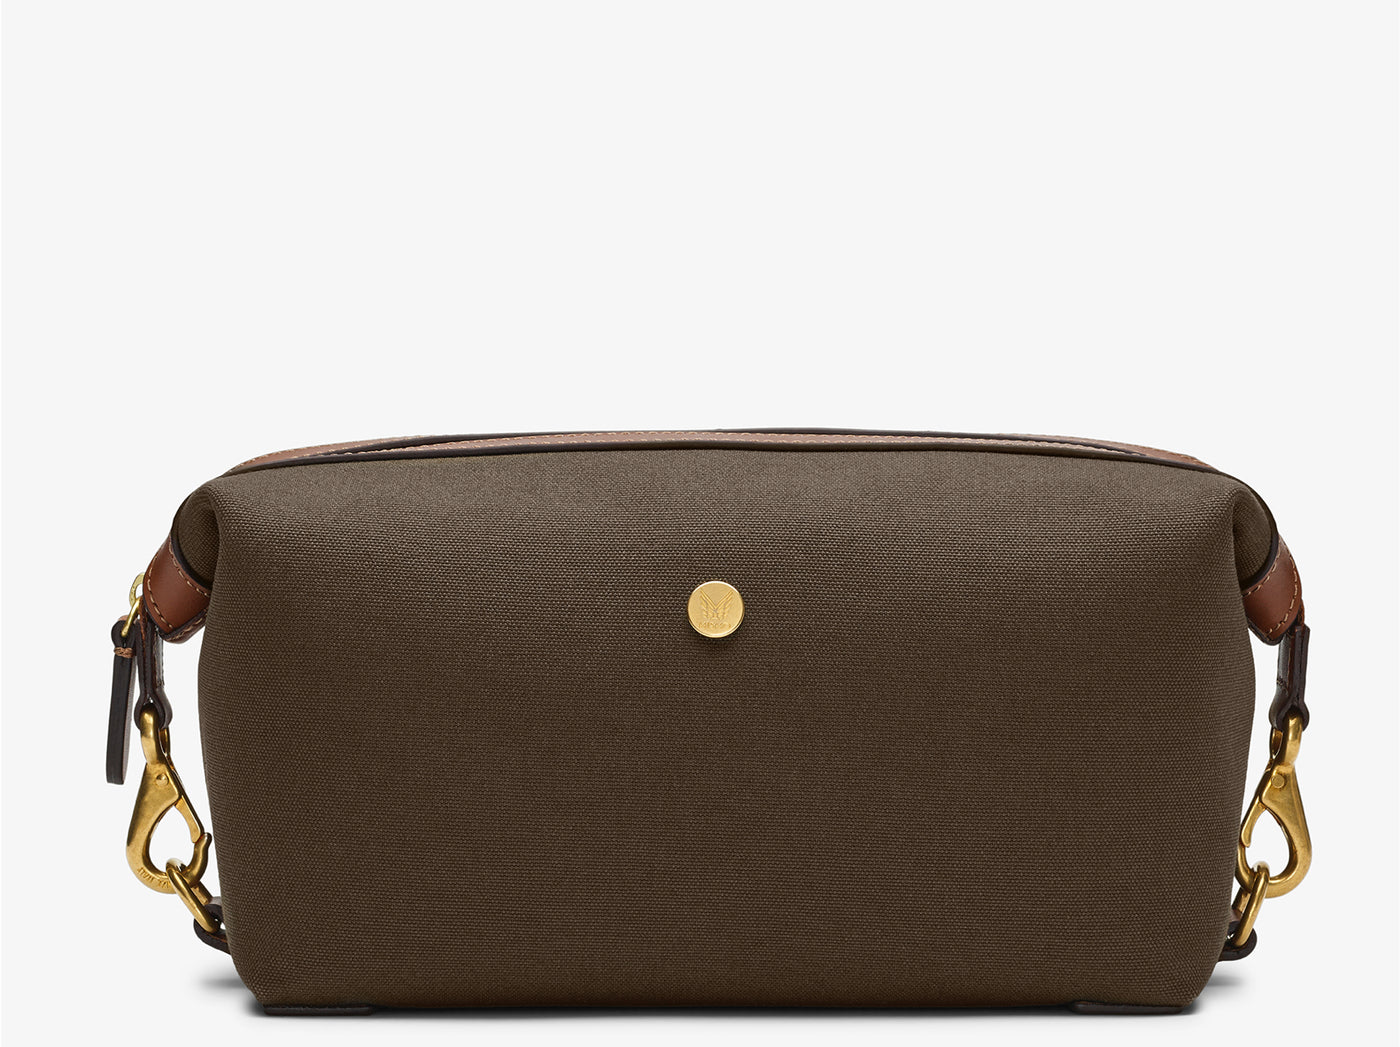 M/S Washbag – Army/Cuoio